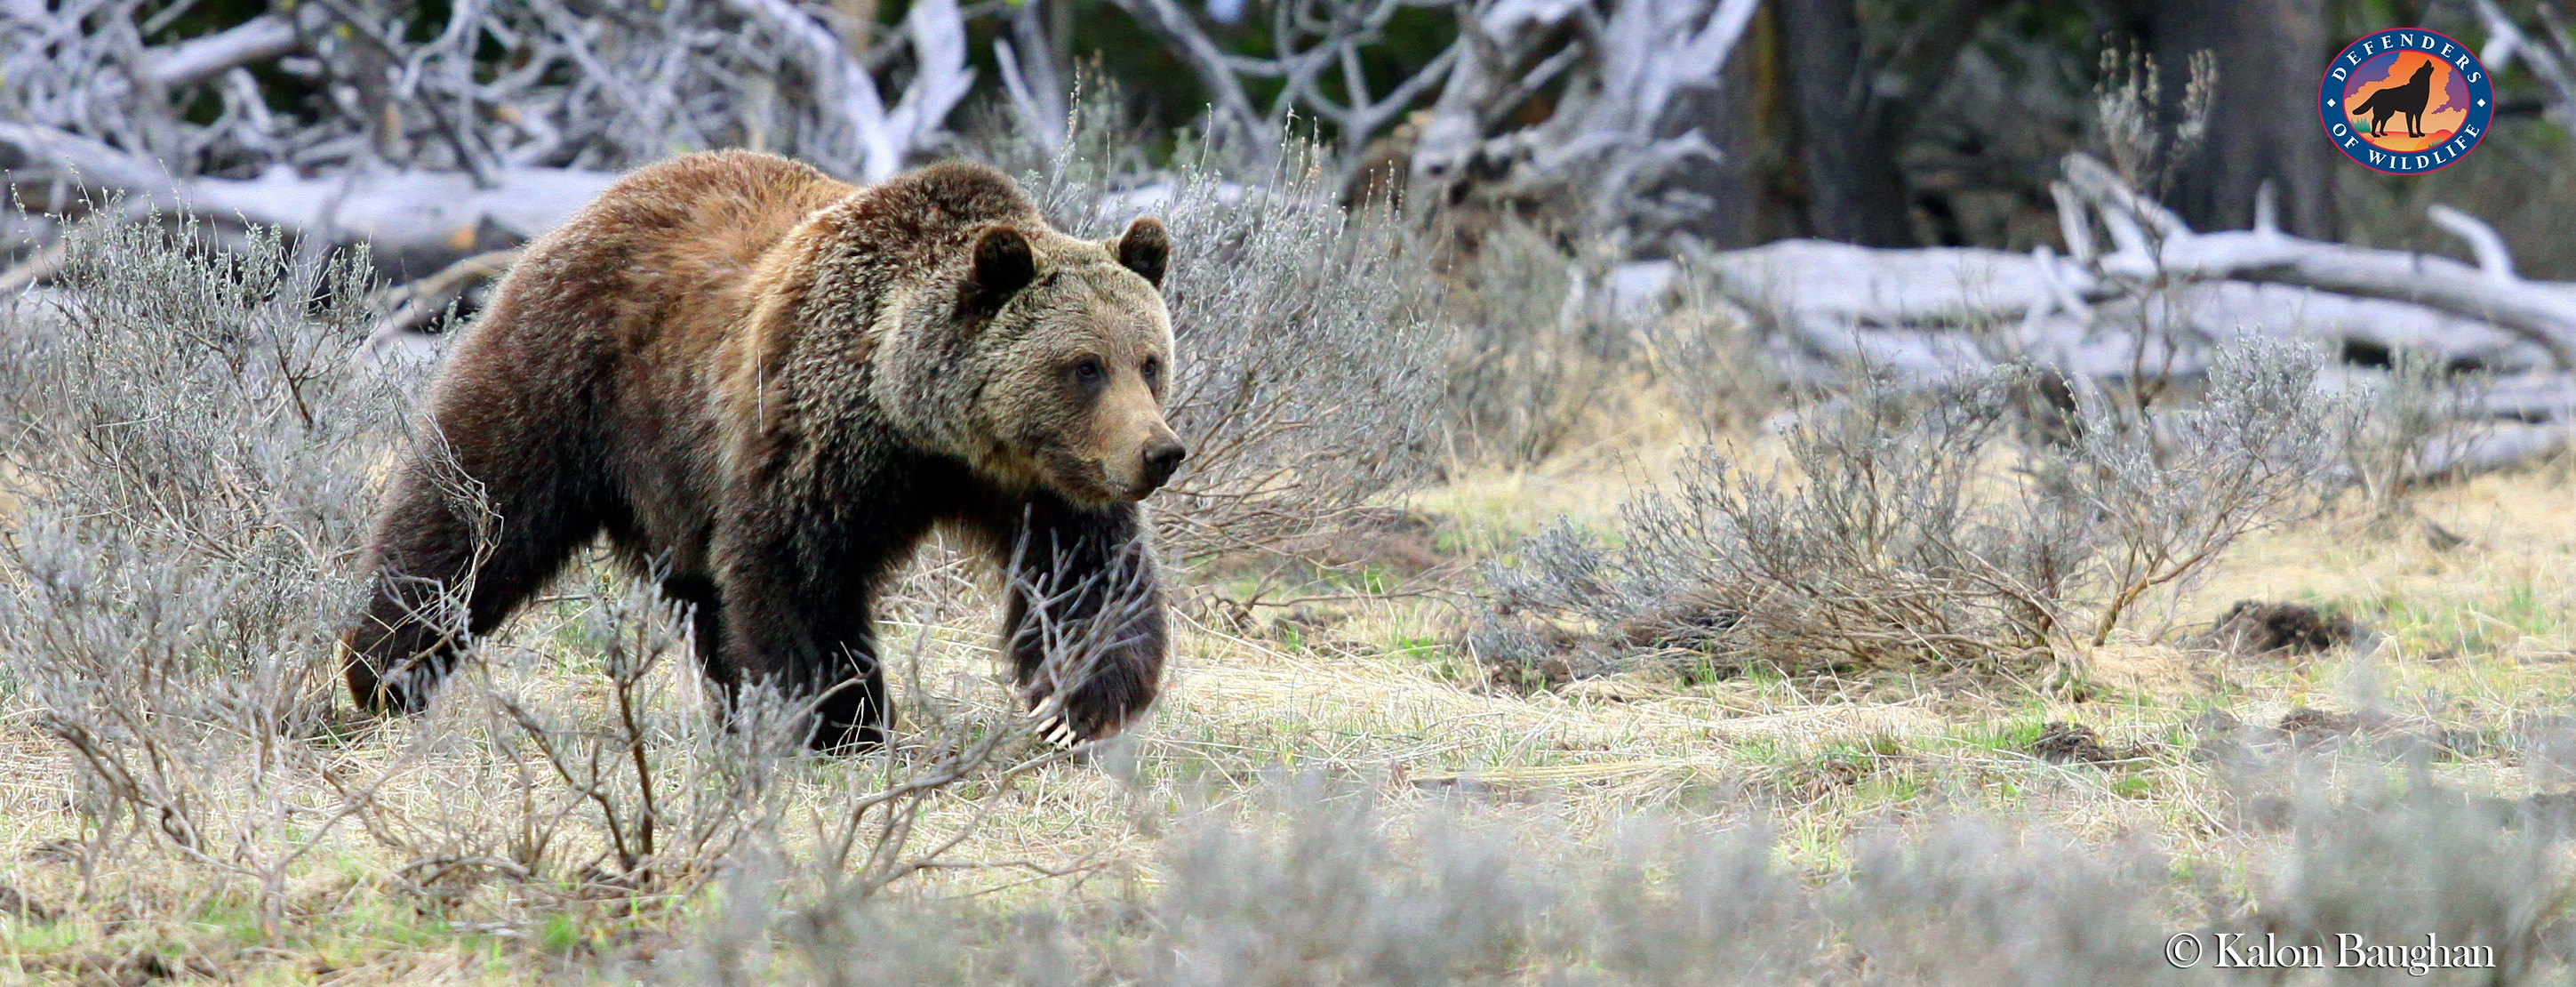 Grizzly Bears Face Changing Management - Wild Without End